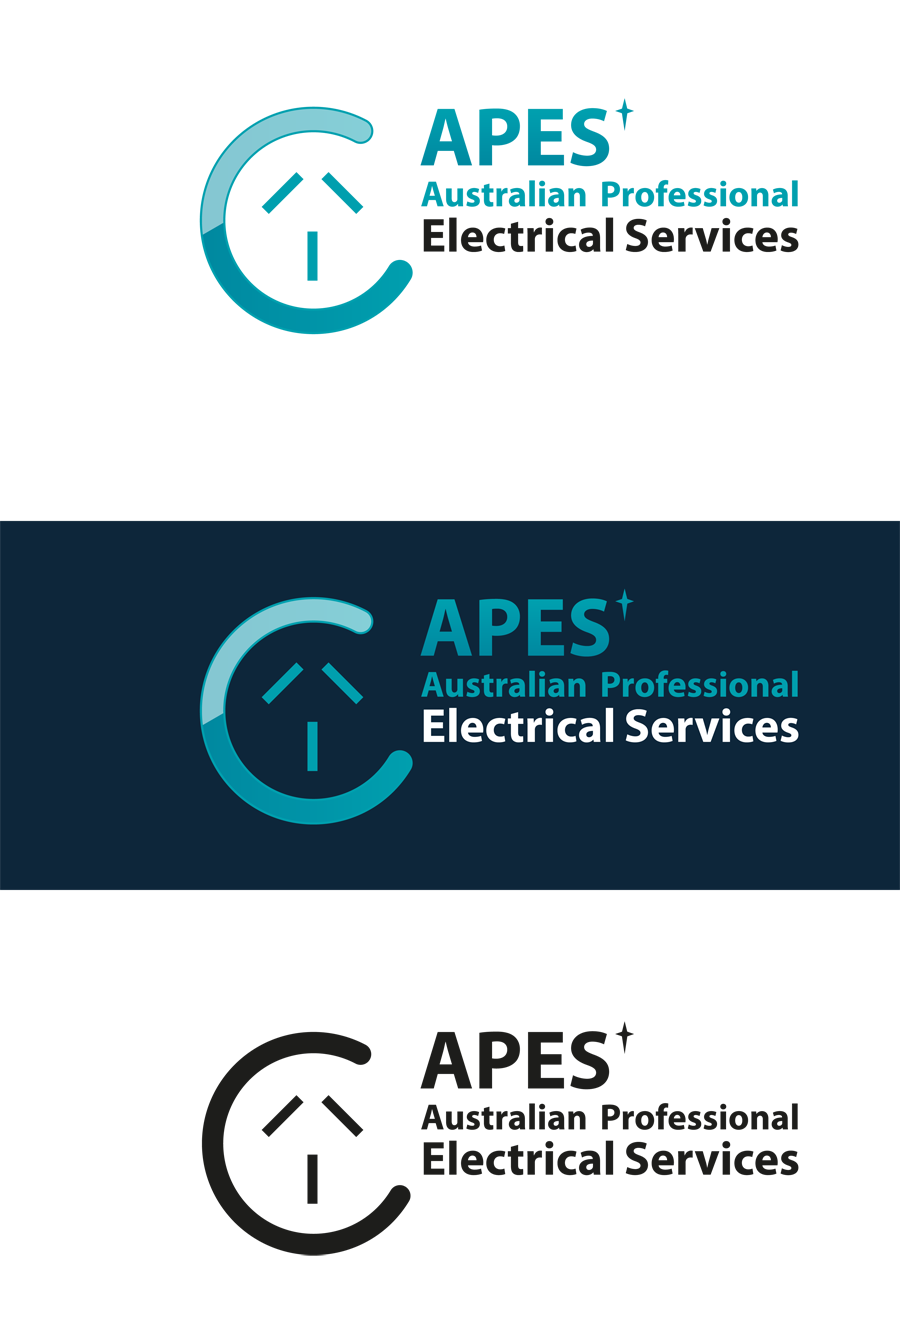 Australian Professional Electrical Services needs a new logo